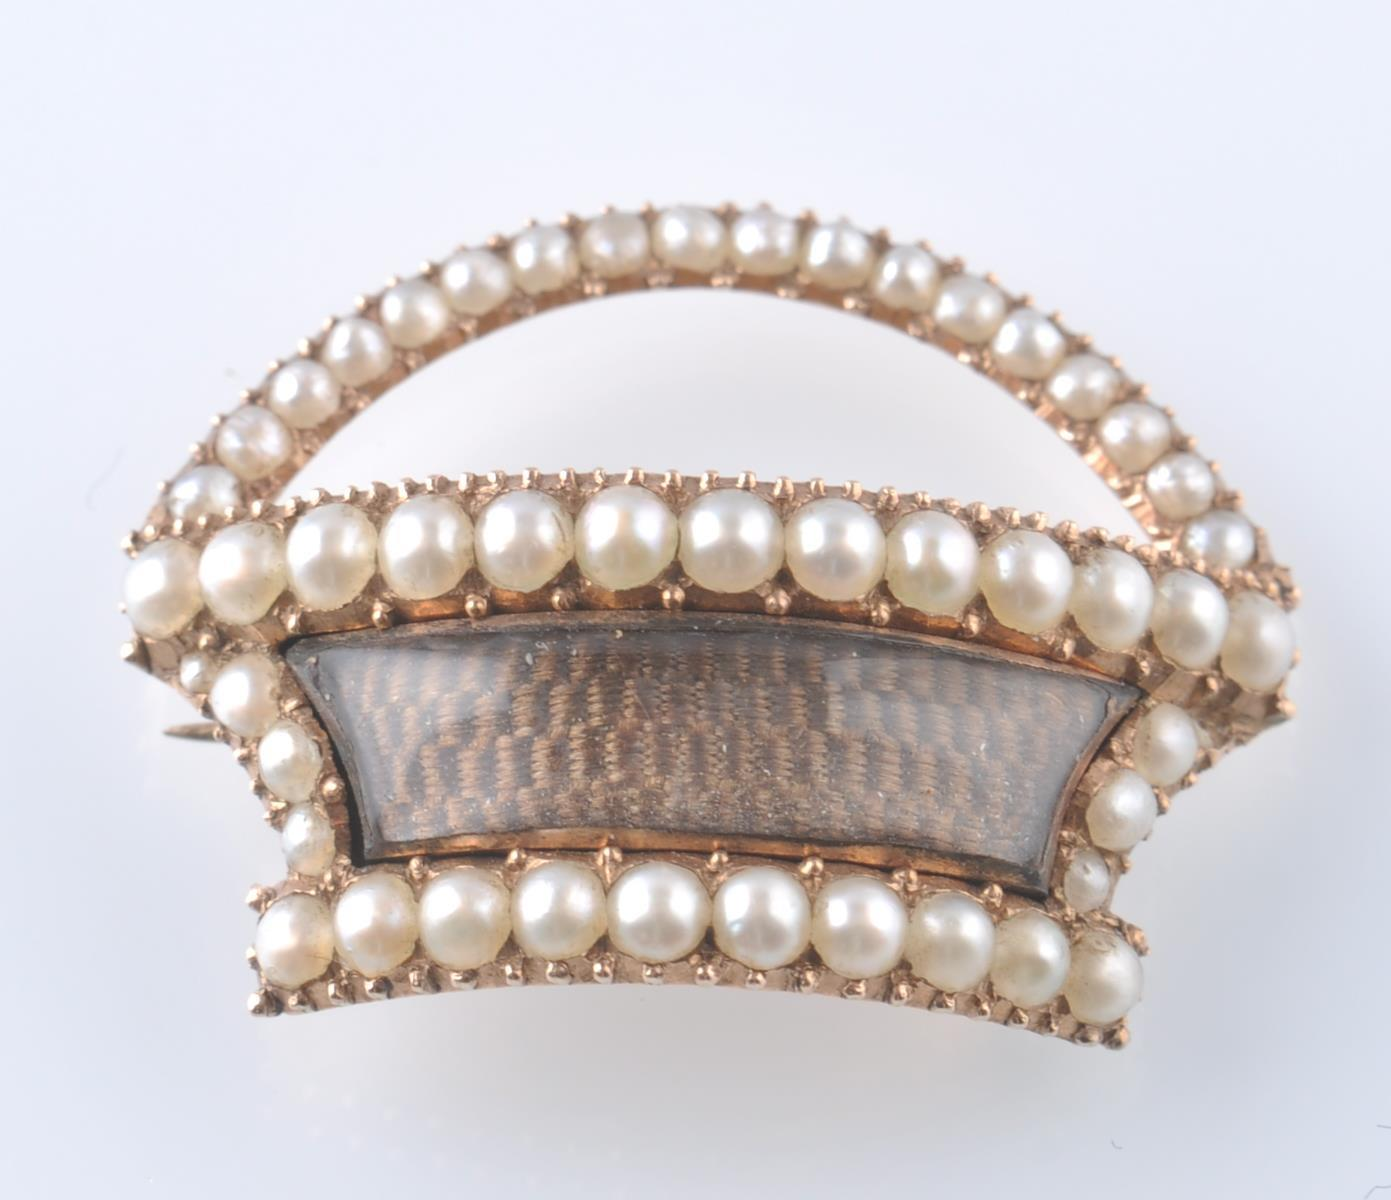 19TH CENTURY GEORGIAN GOLD AND SEED PEARL RELIQUAR - Image 2 of 3